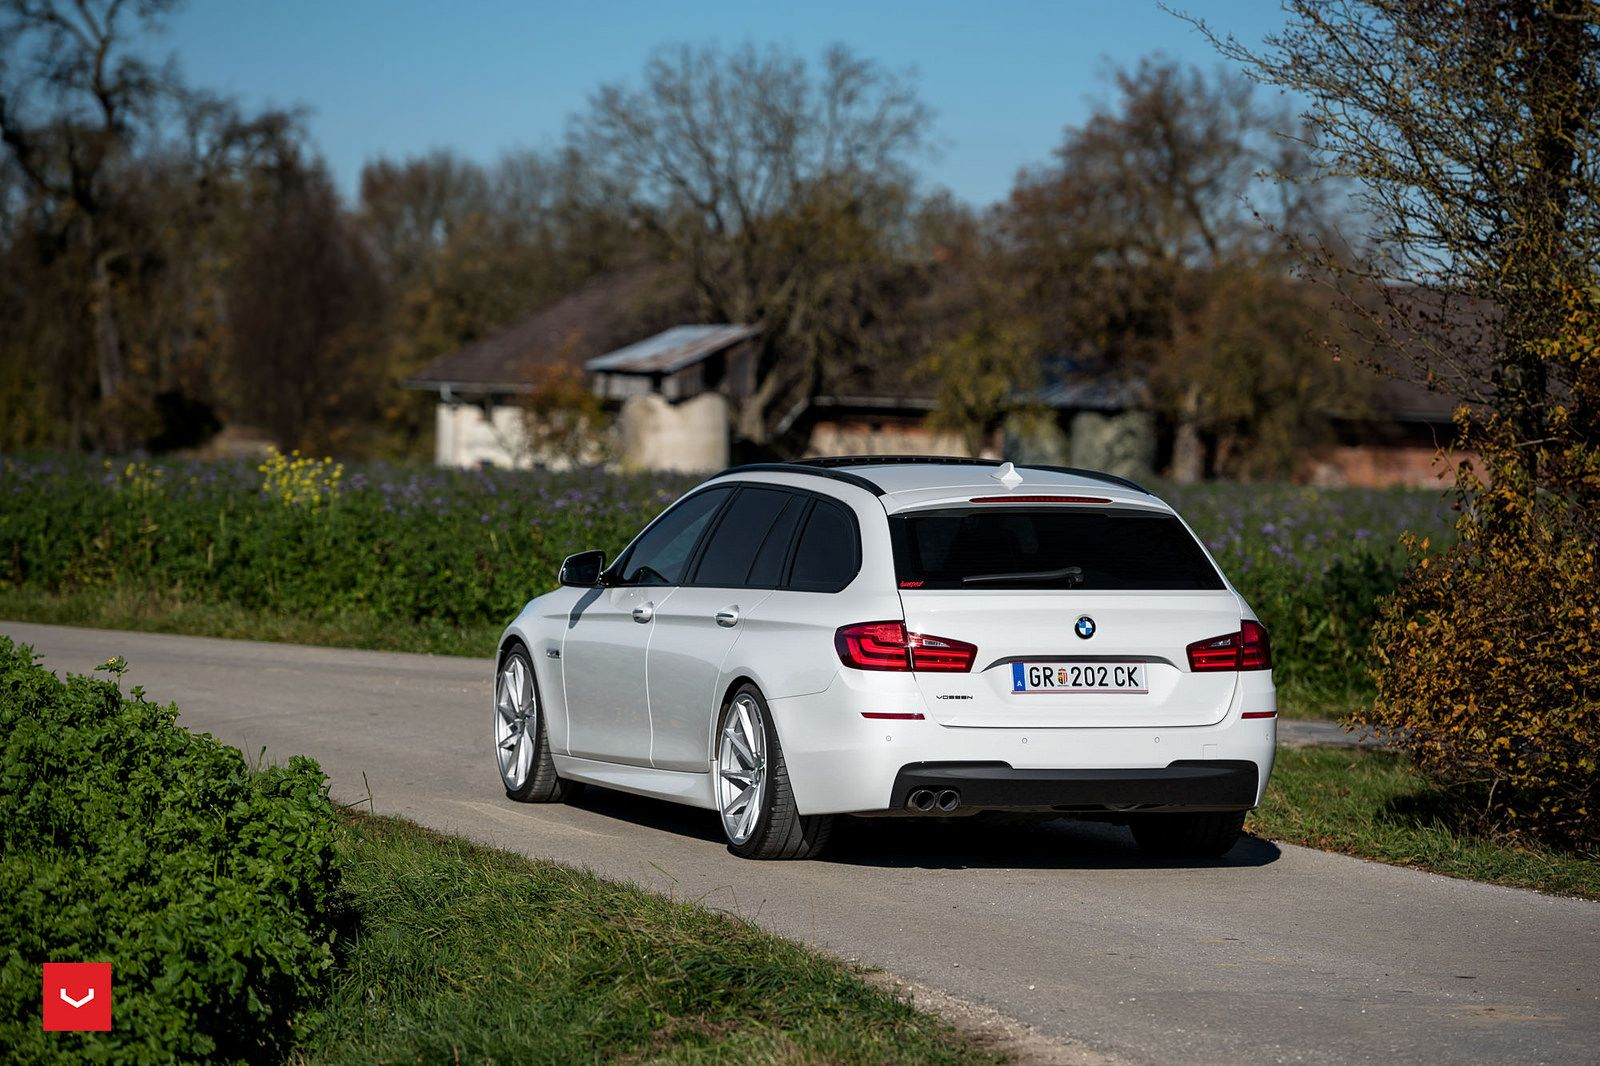 F11 alpina b5 biturbo touring page 2 5series net forums - Image Of Alpine White Bmw 5 Series Touring Gets A Set Of Vossen Wheels 8 750x500